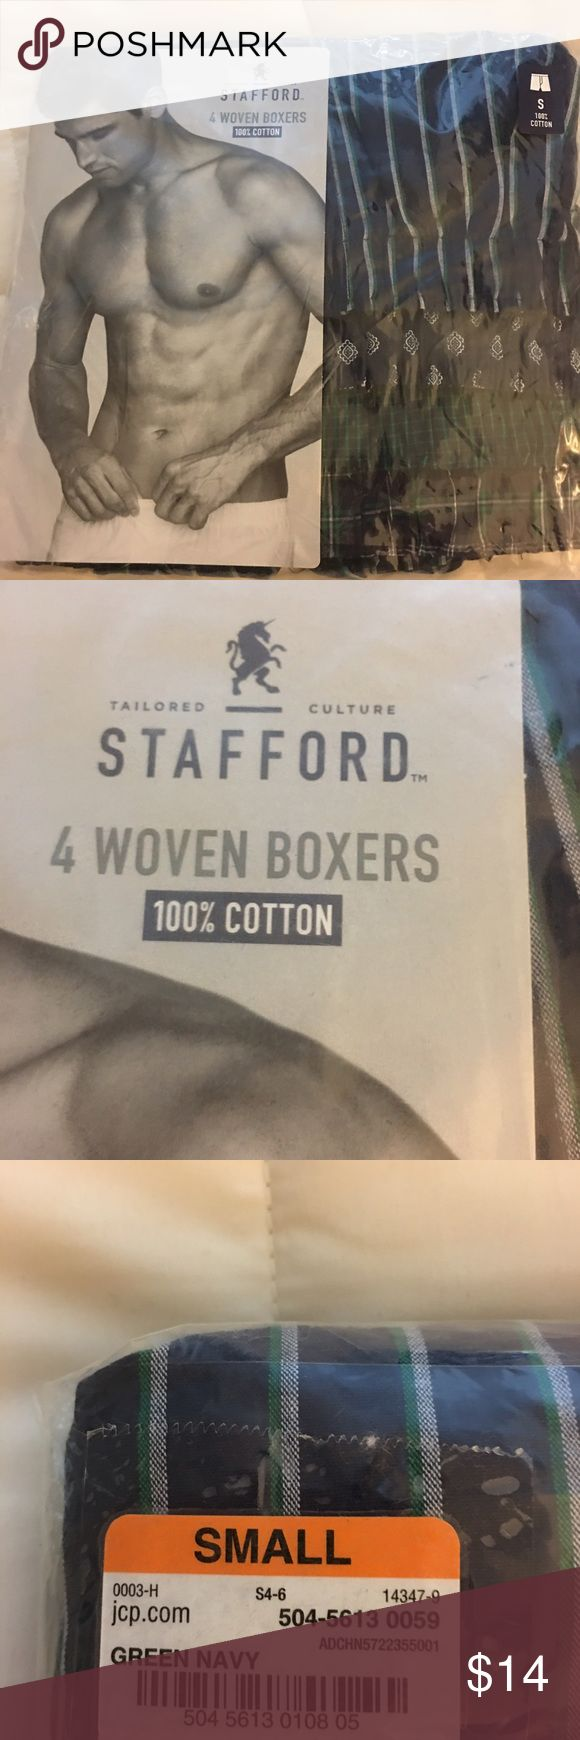 Stafford 100% cotton woven boxers- 4 pack-Sm 28-30 Stafford 100% cotton woven boxers- 4 pack-Sm 28-30 - Green/Navy colors Stafford Underwear & Socks Boxers